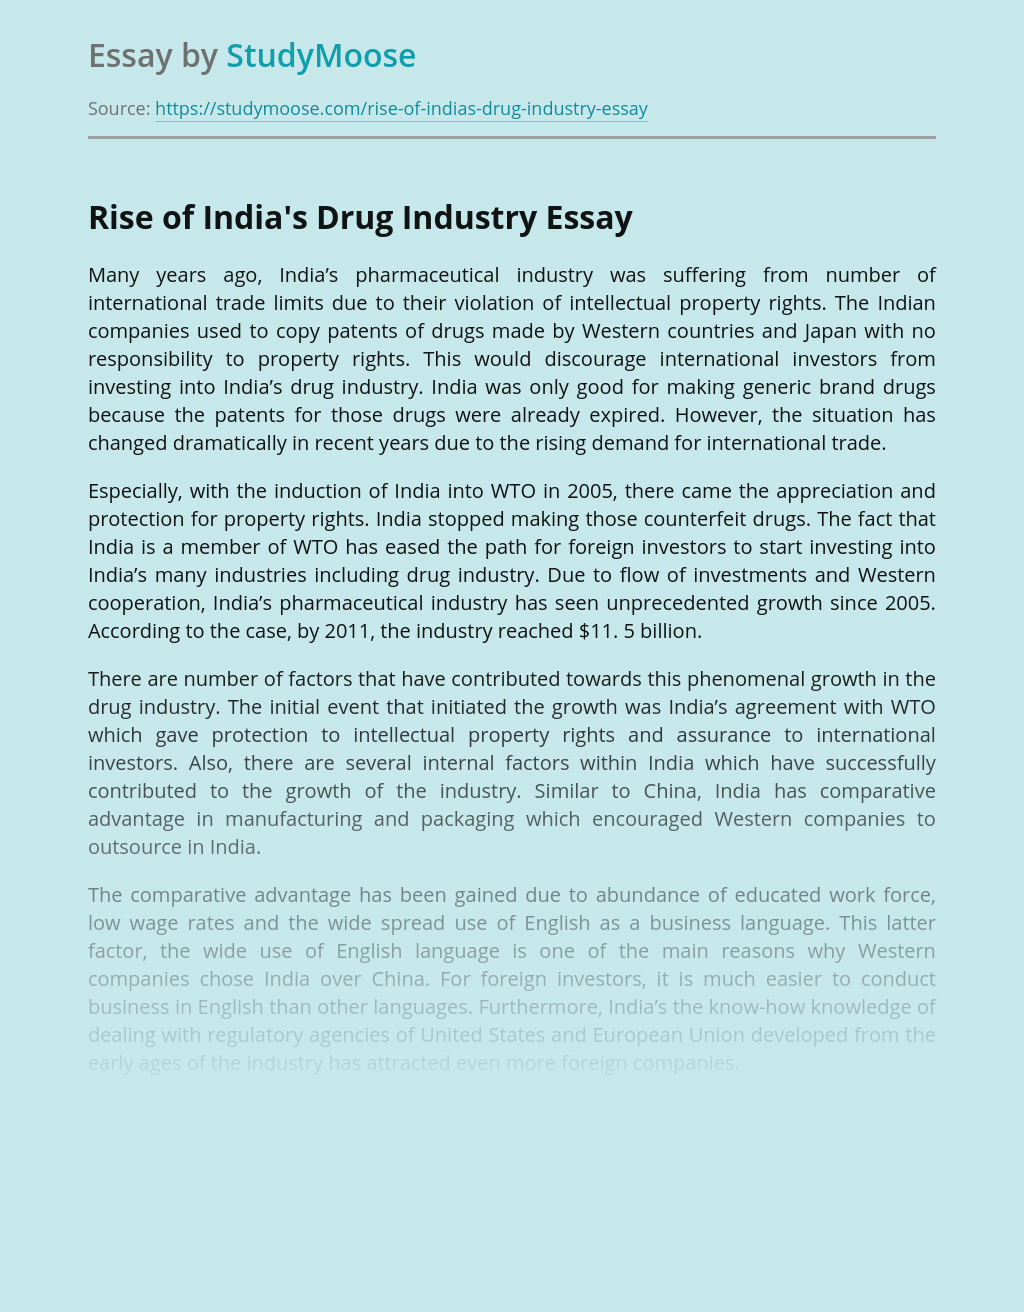 Rise of India's Drug Industry